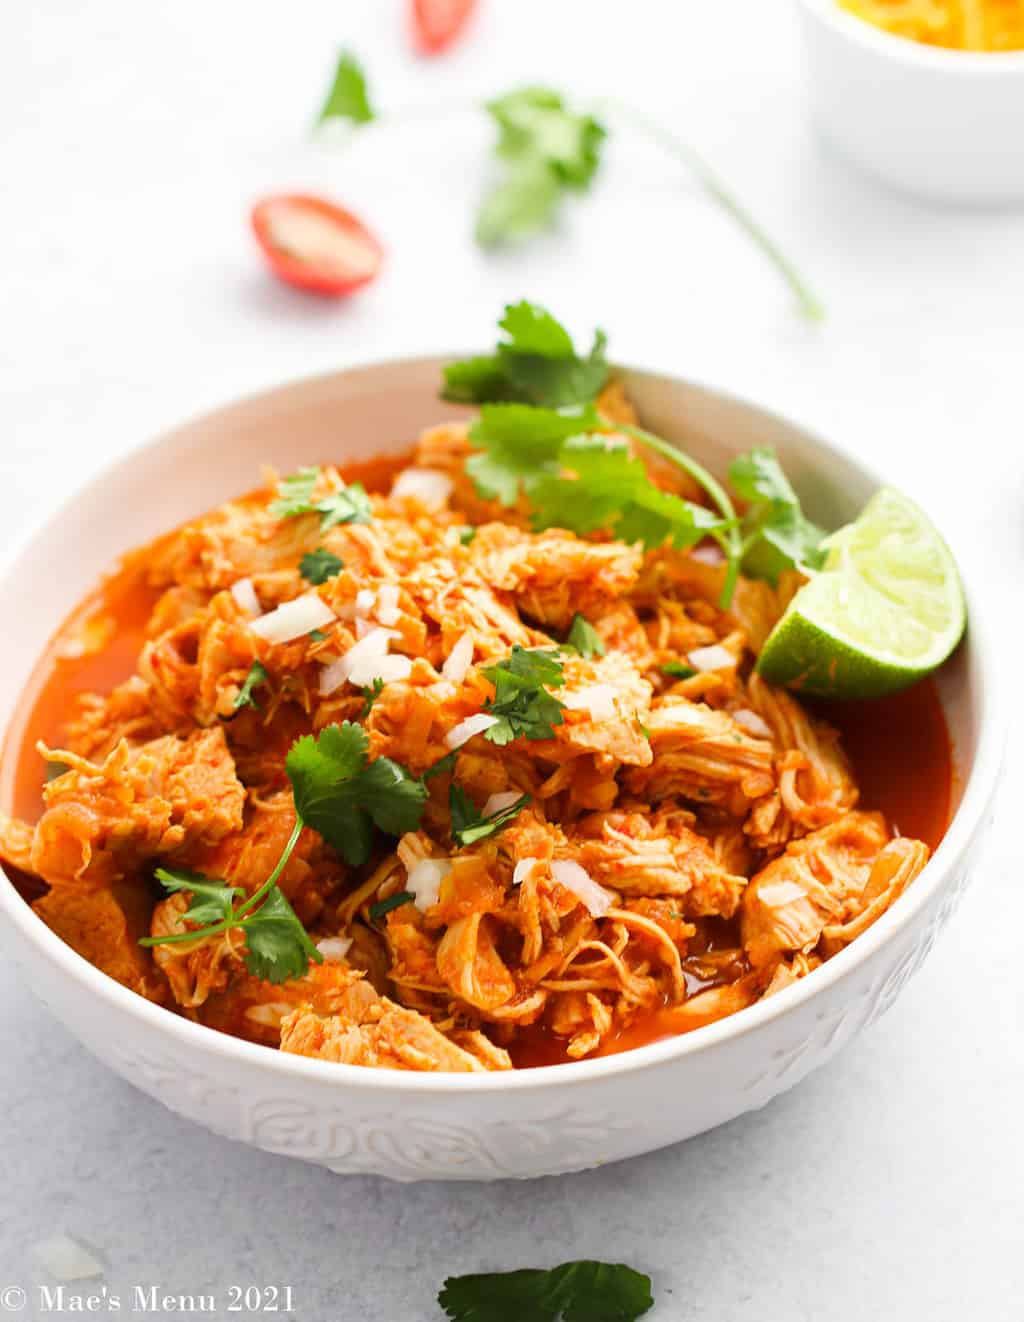 An overhead shot of a large bowl of instant pot shredded chicken tacos